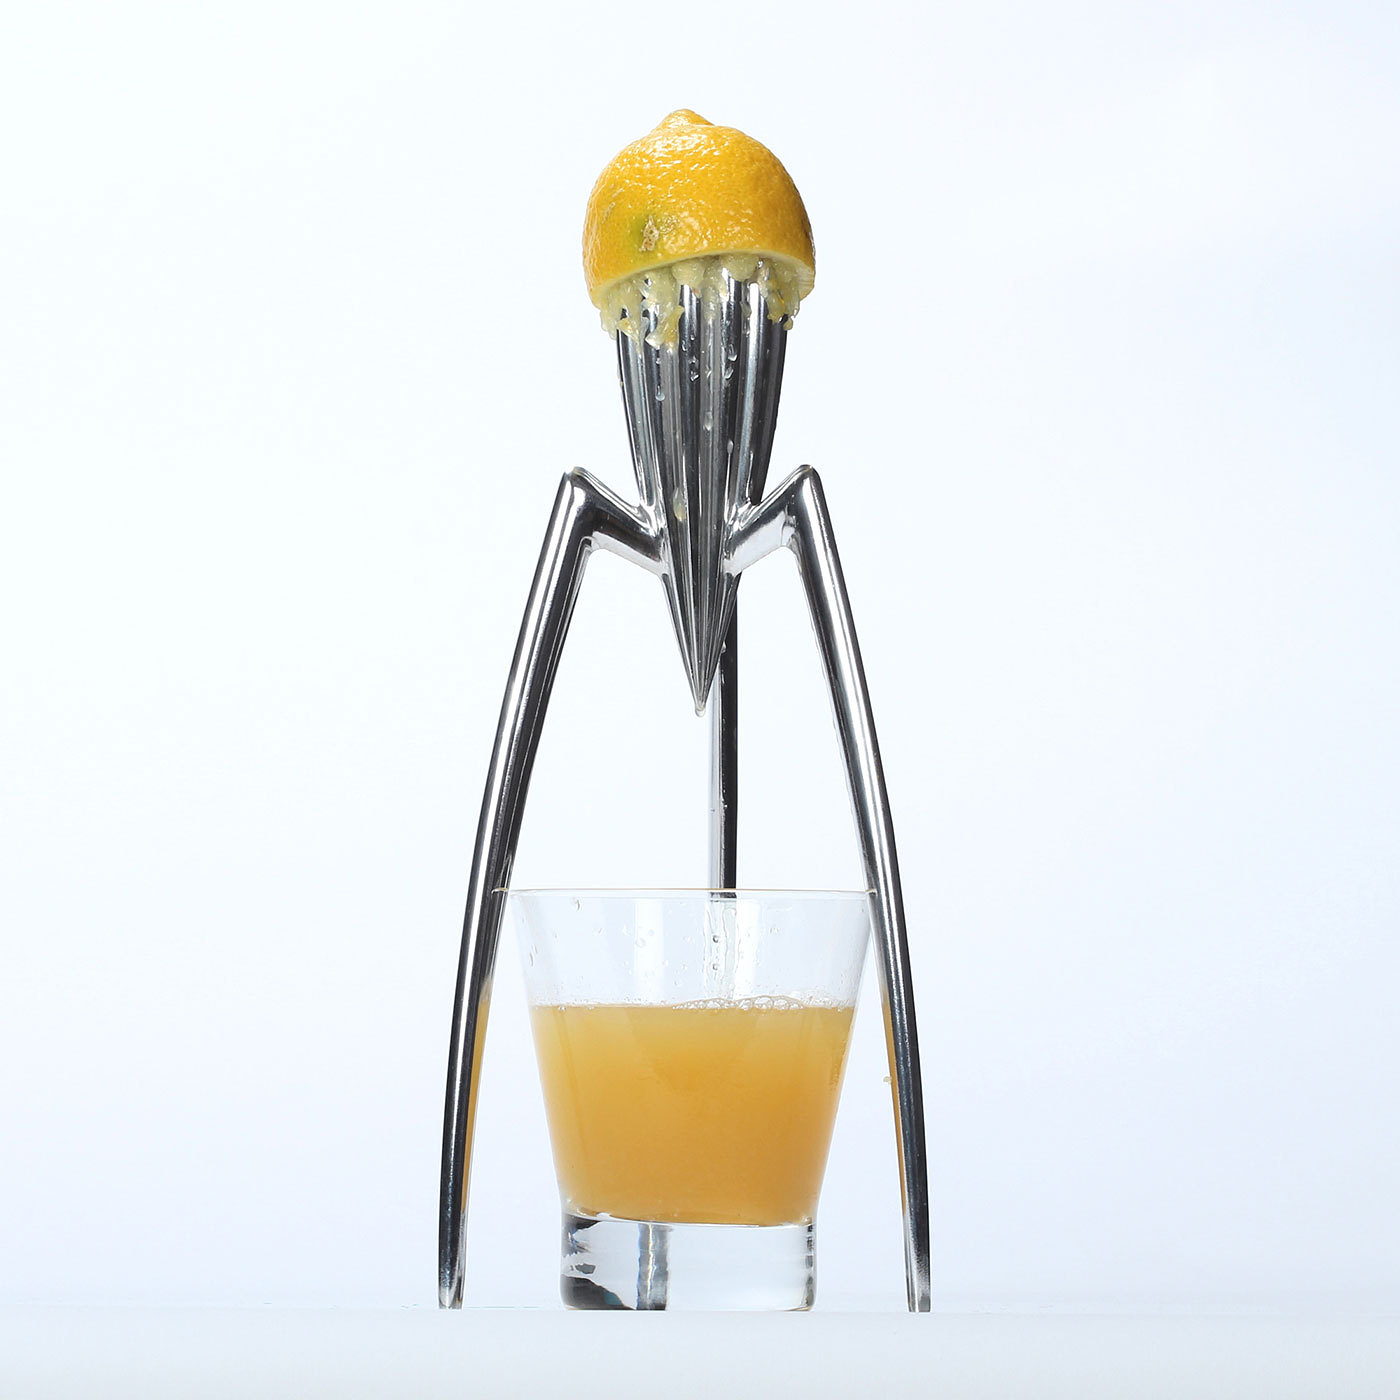 juicy salif citrus squeezer by alessi 1990. Black Bedroom Furniture Sets. Home Design Ideas